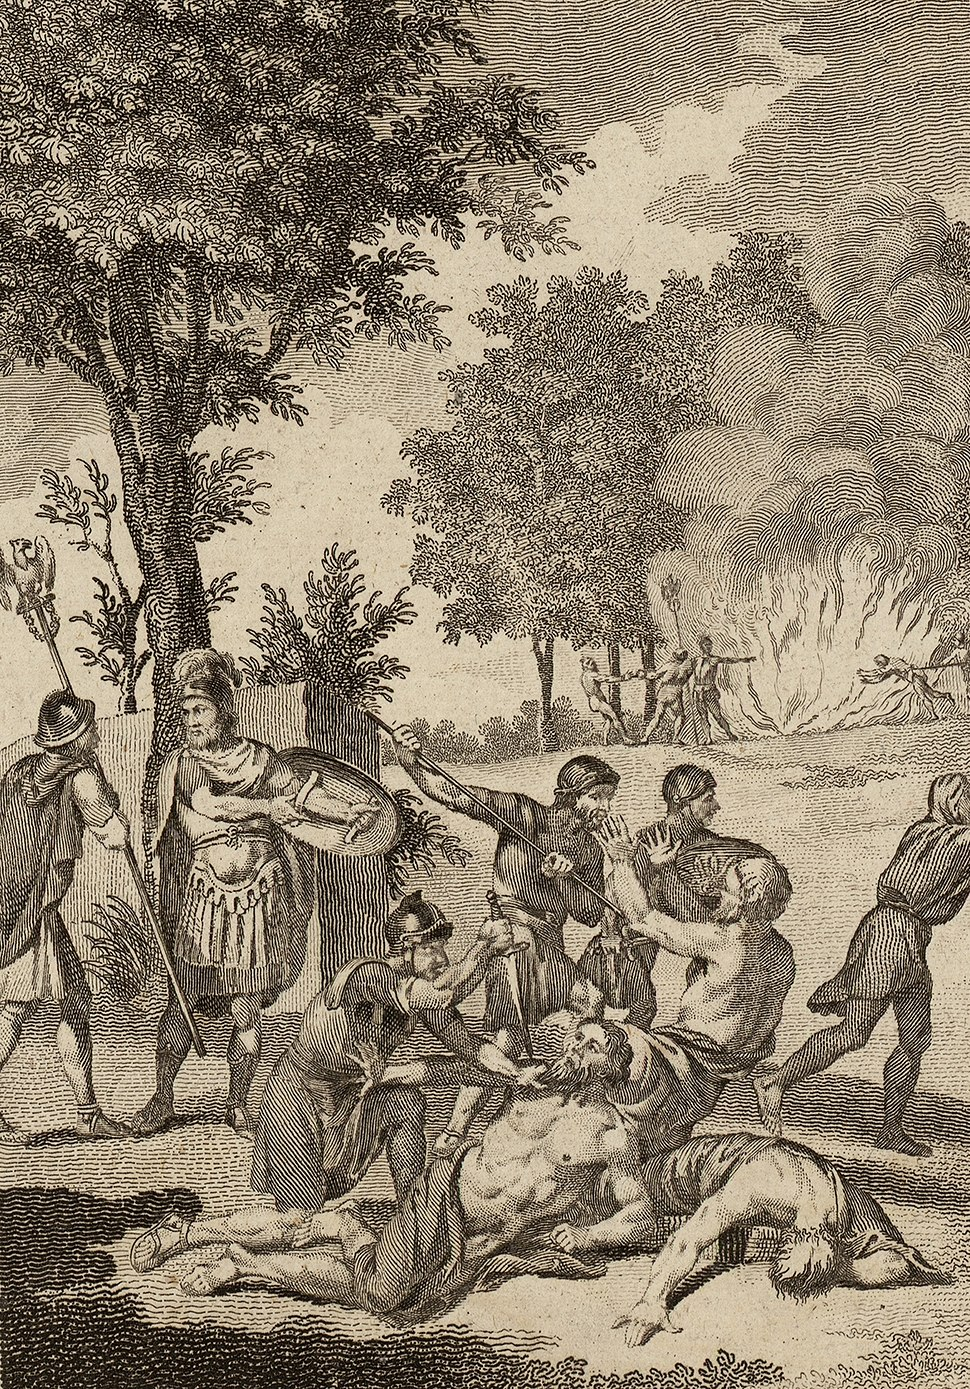 Romans murdering Druids and burning their groves cropped